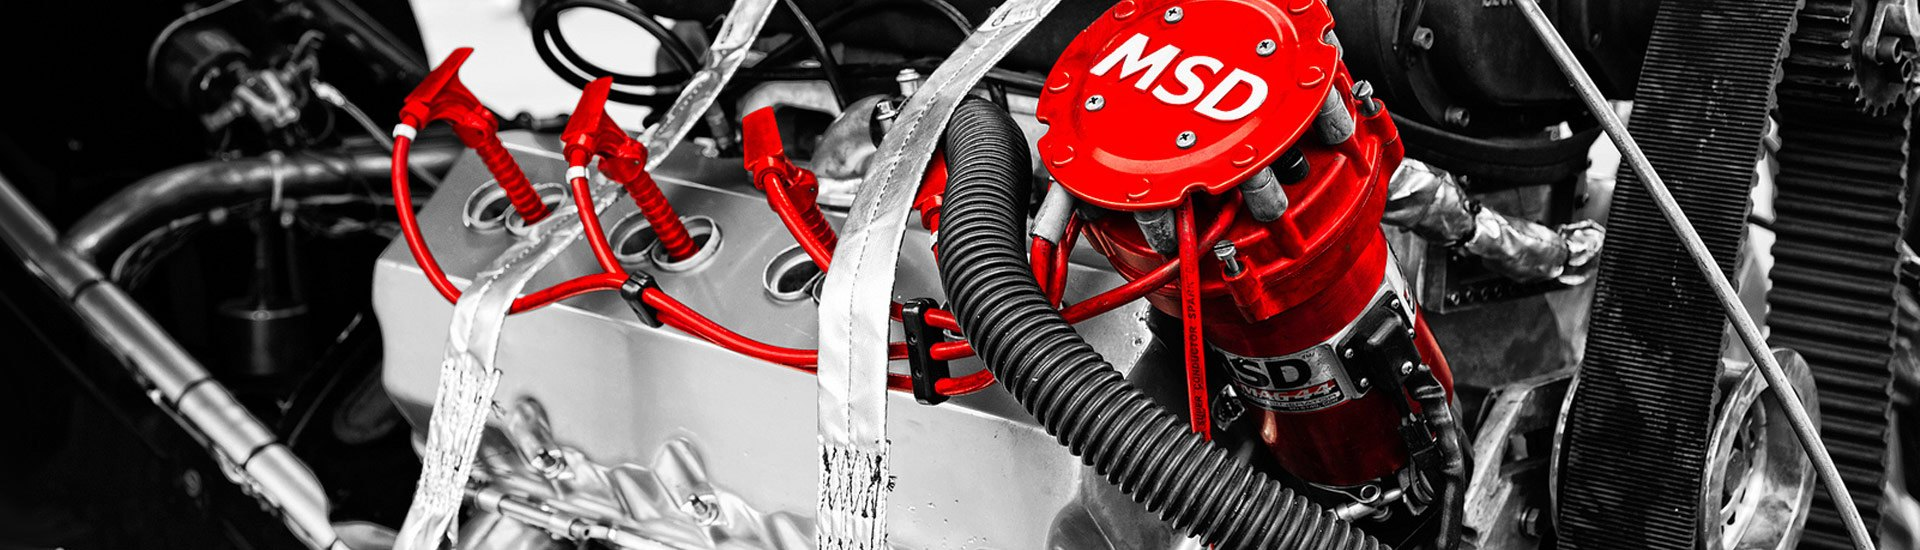 hight resolution of performance ignition systems